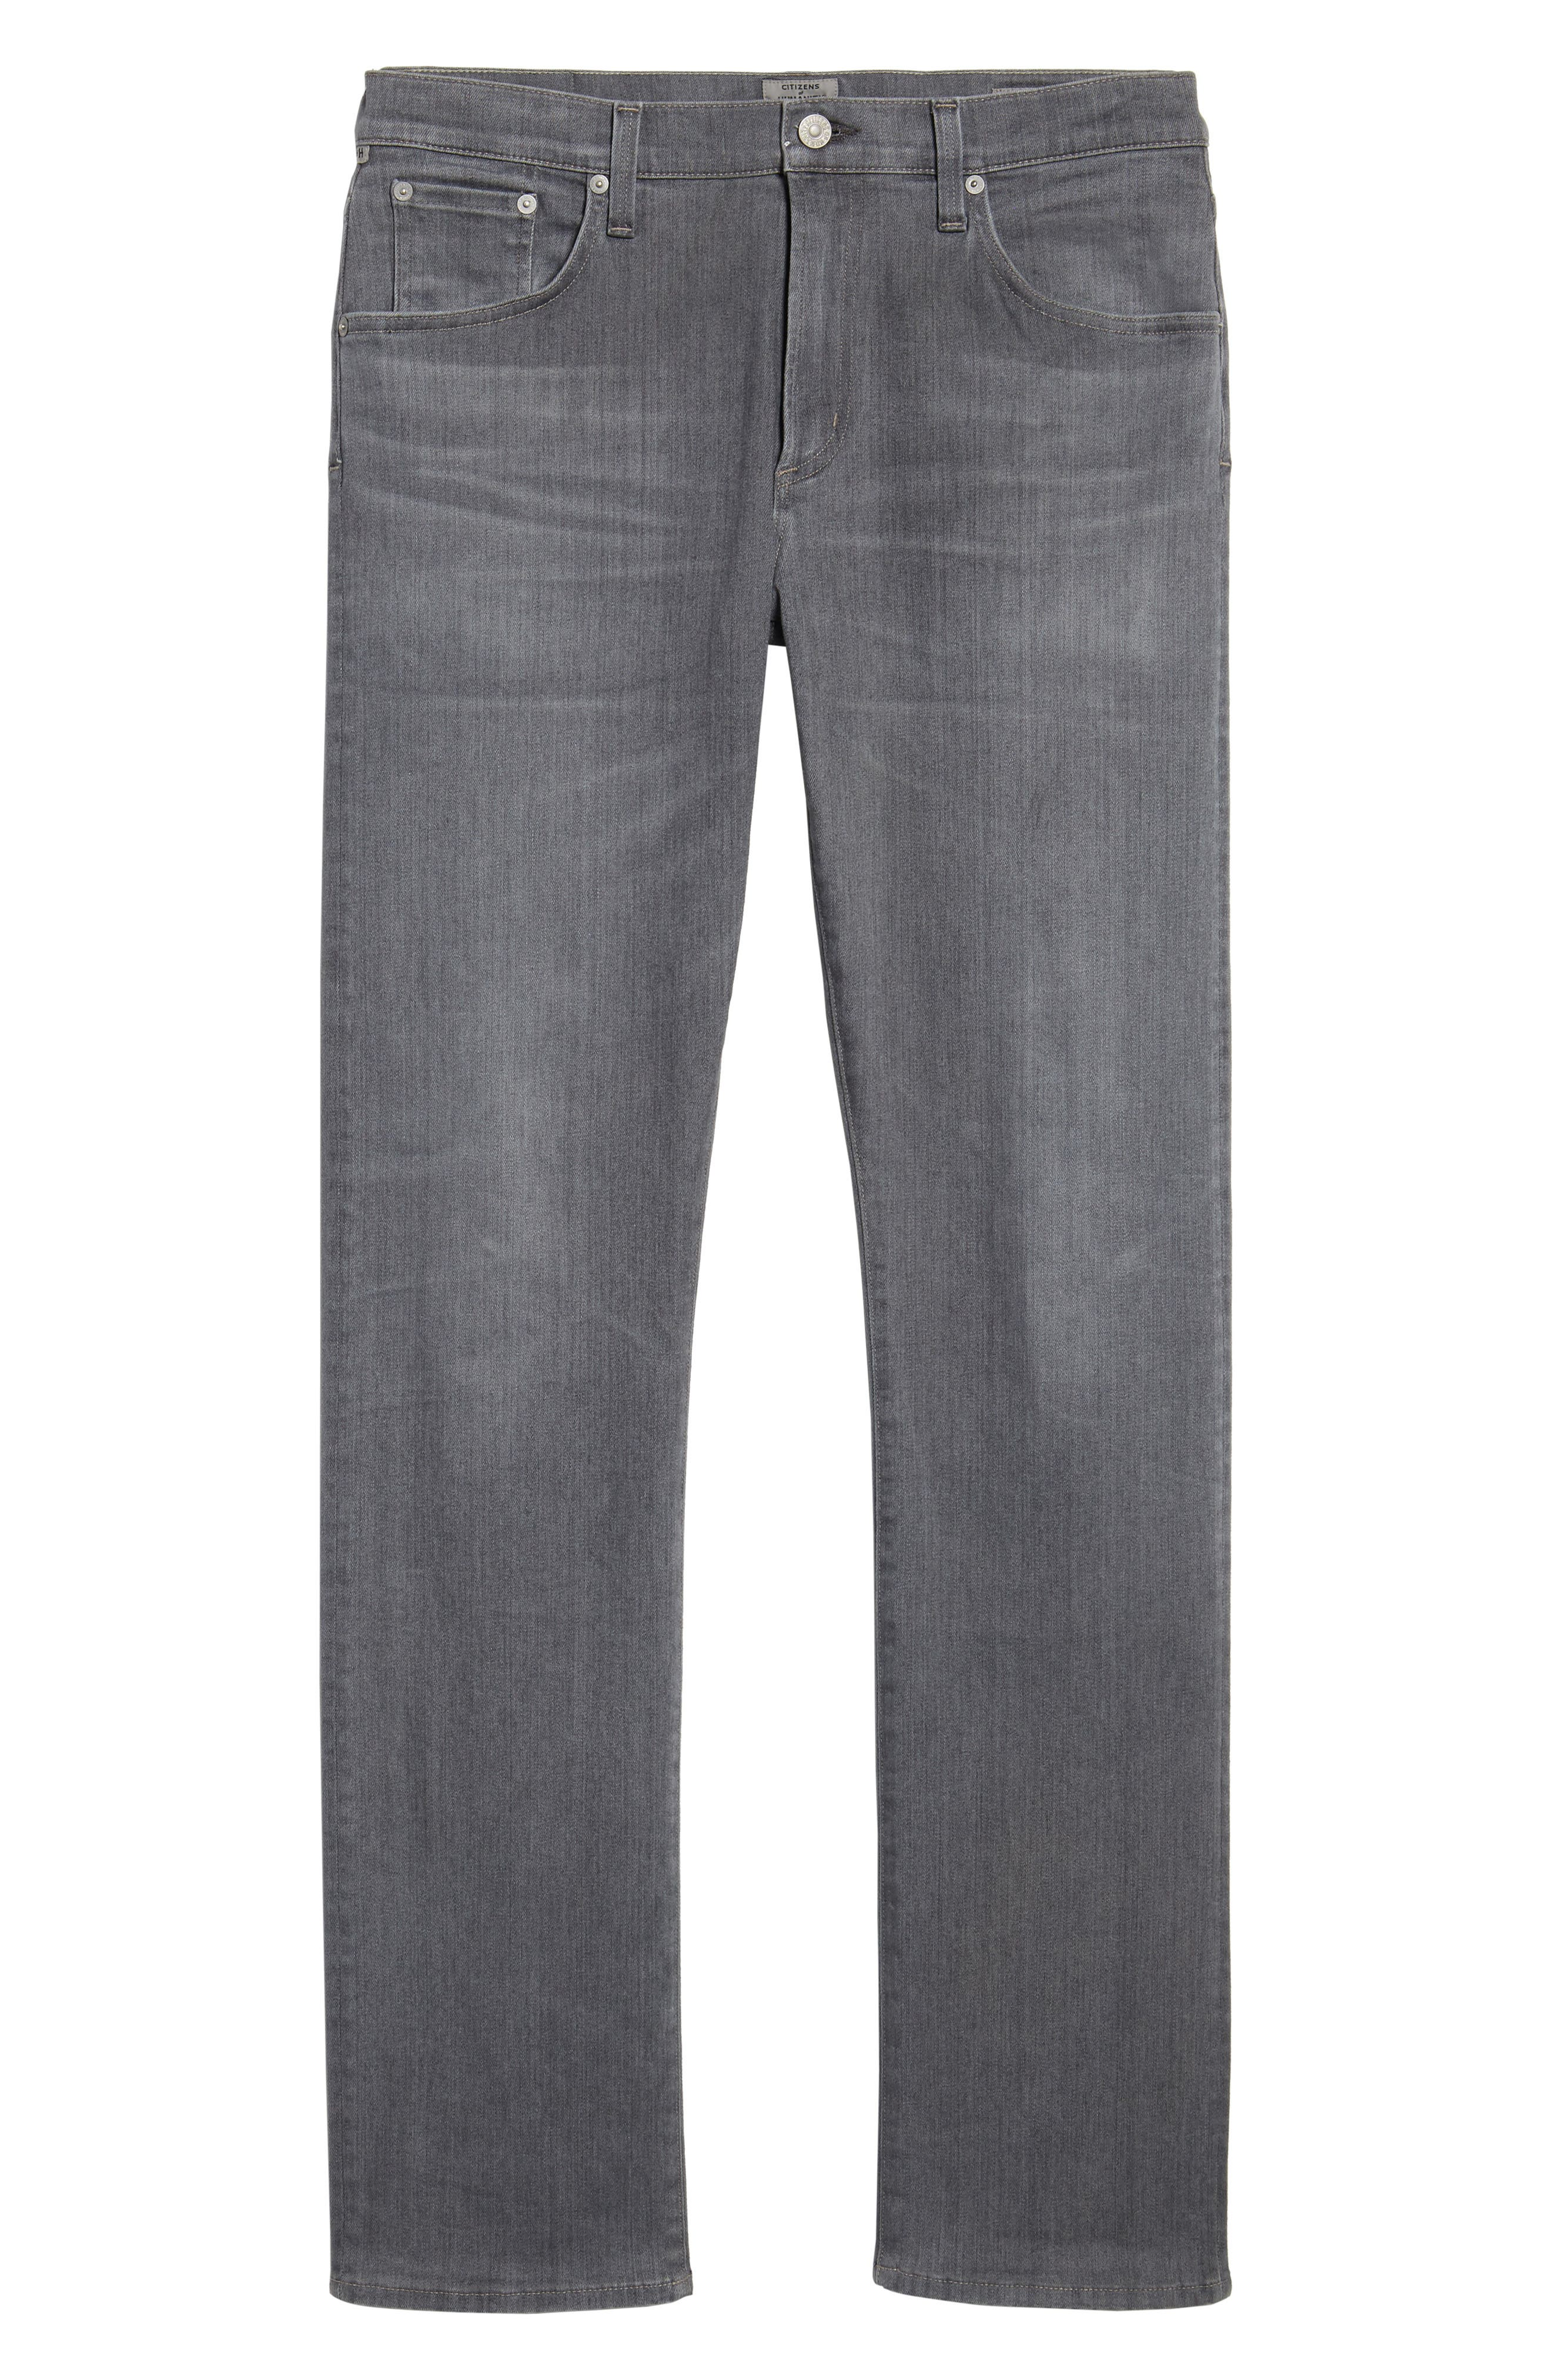 PERFORM - Gage Slim Straight Fit Jeans,                             Alternate thumbnail 6, color,                             034